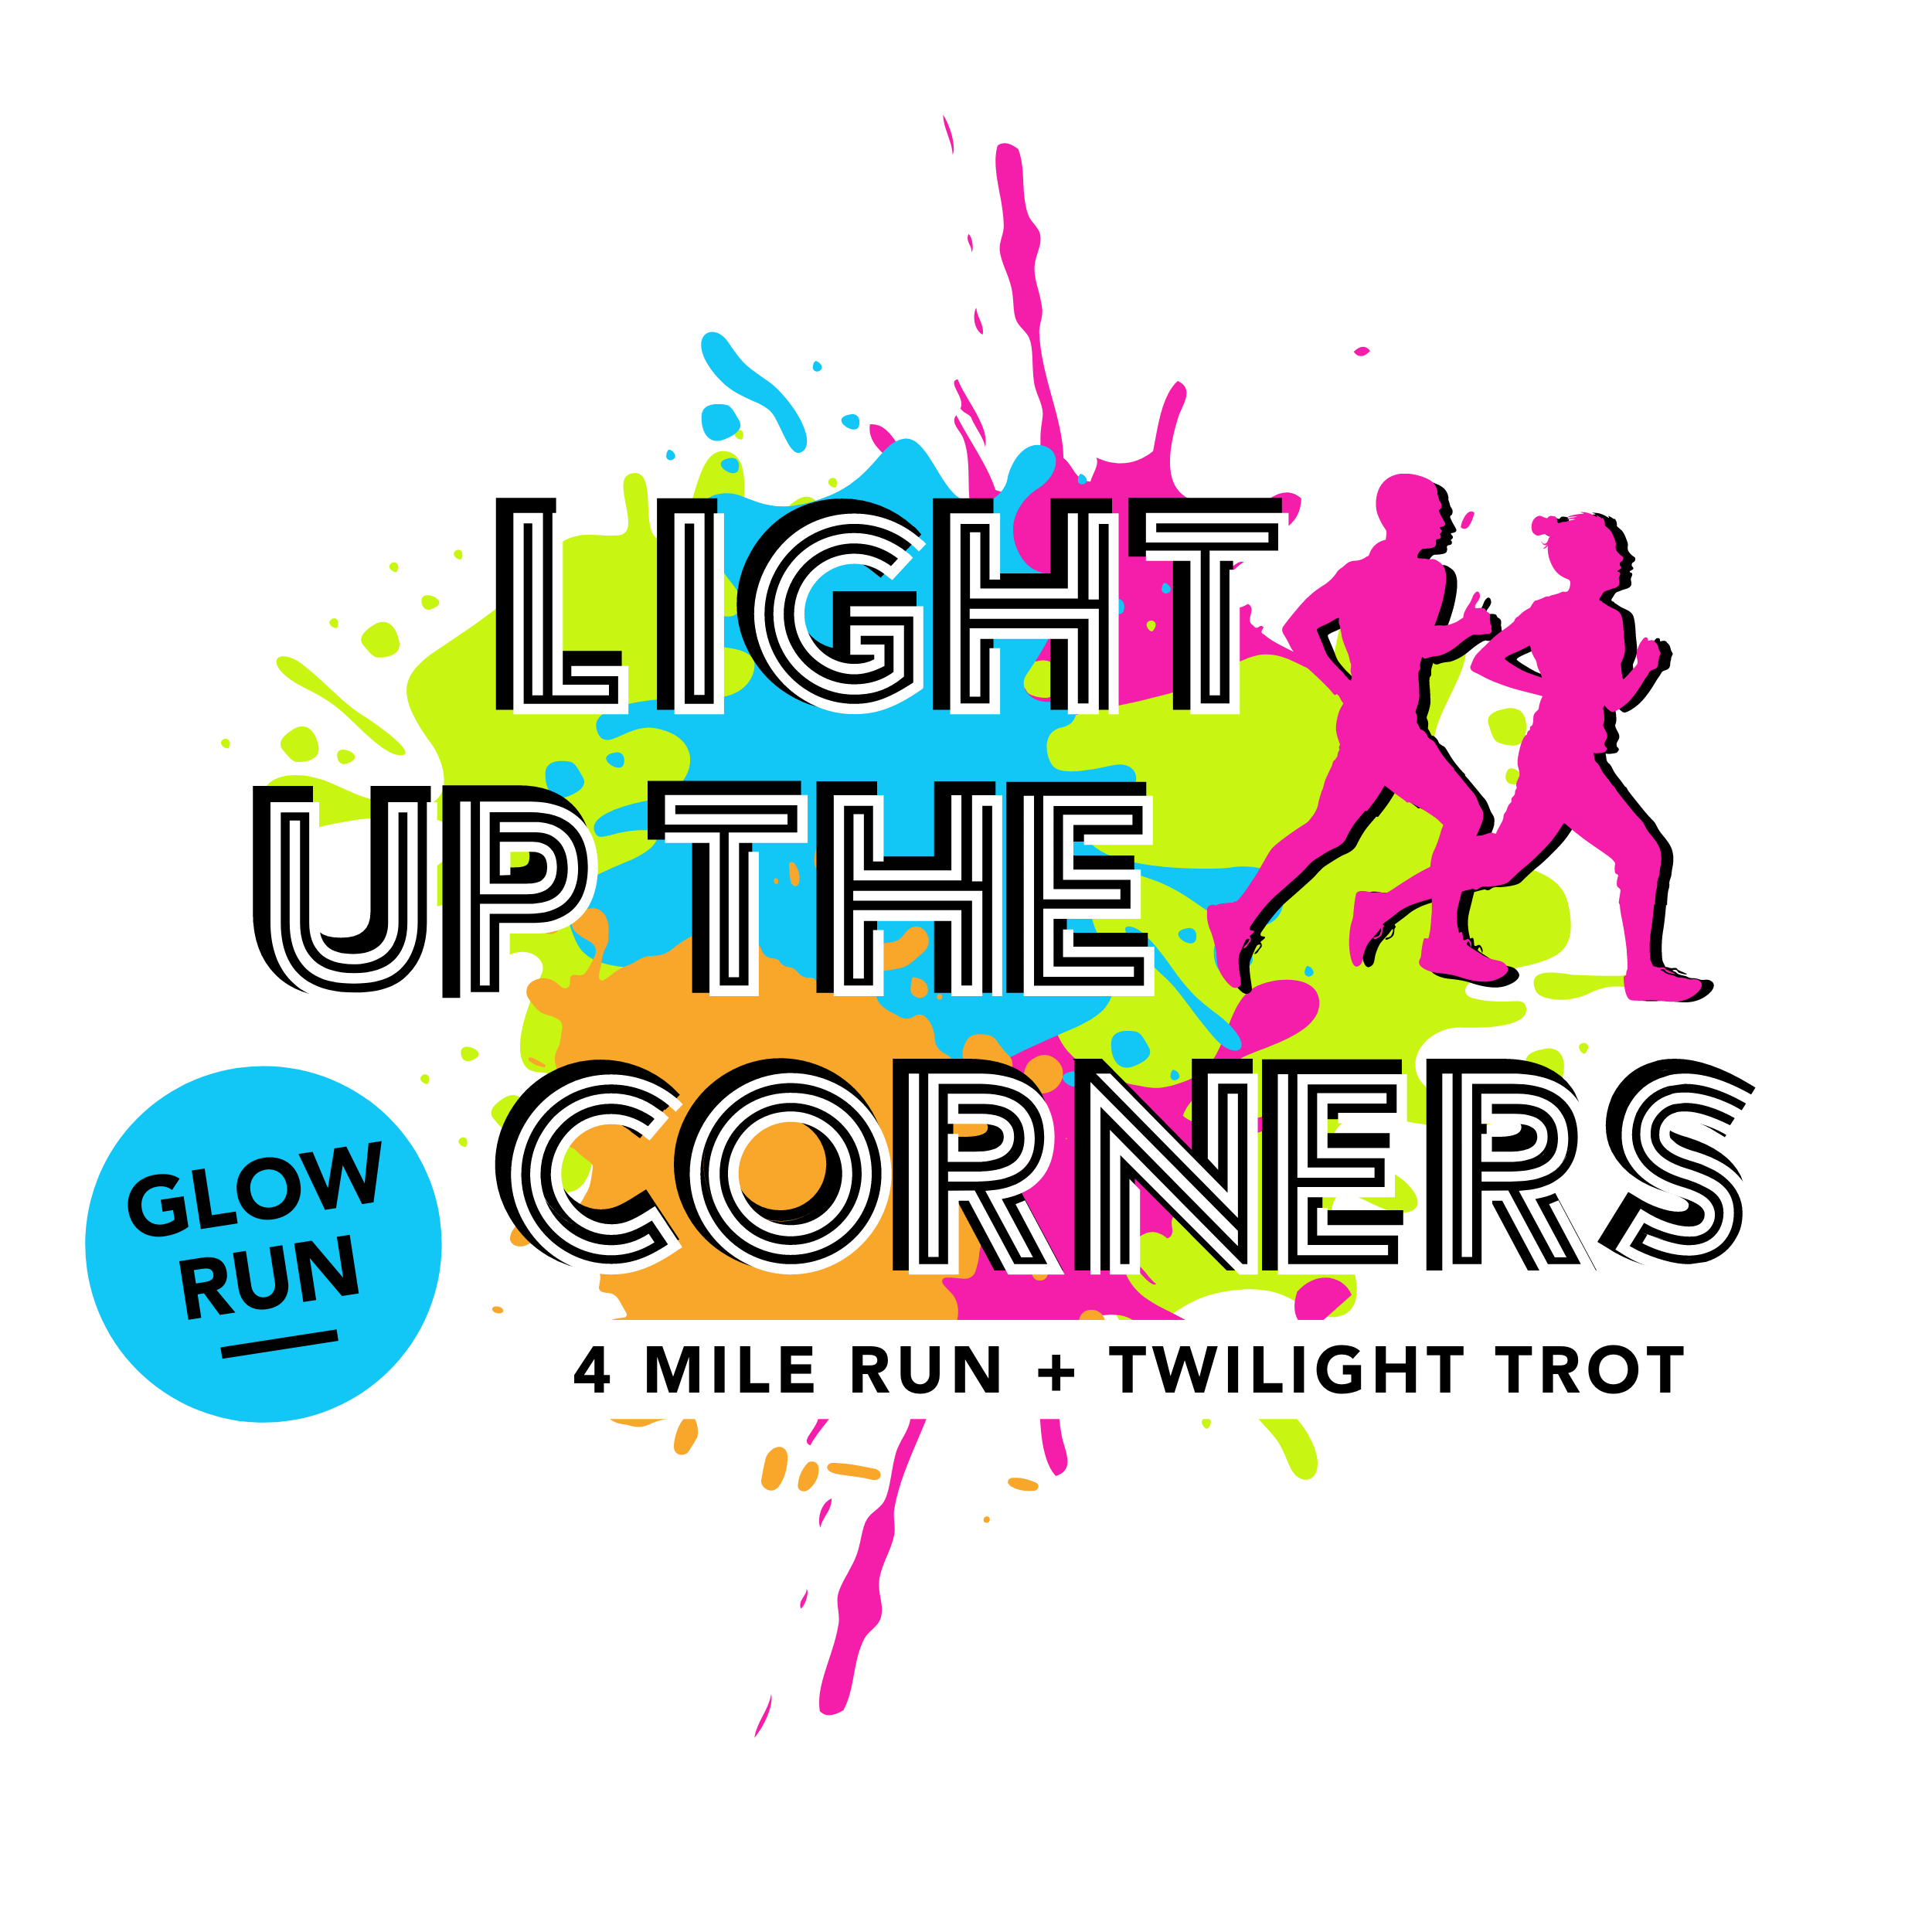 Light Up The Corners